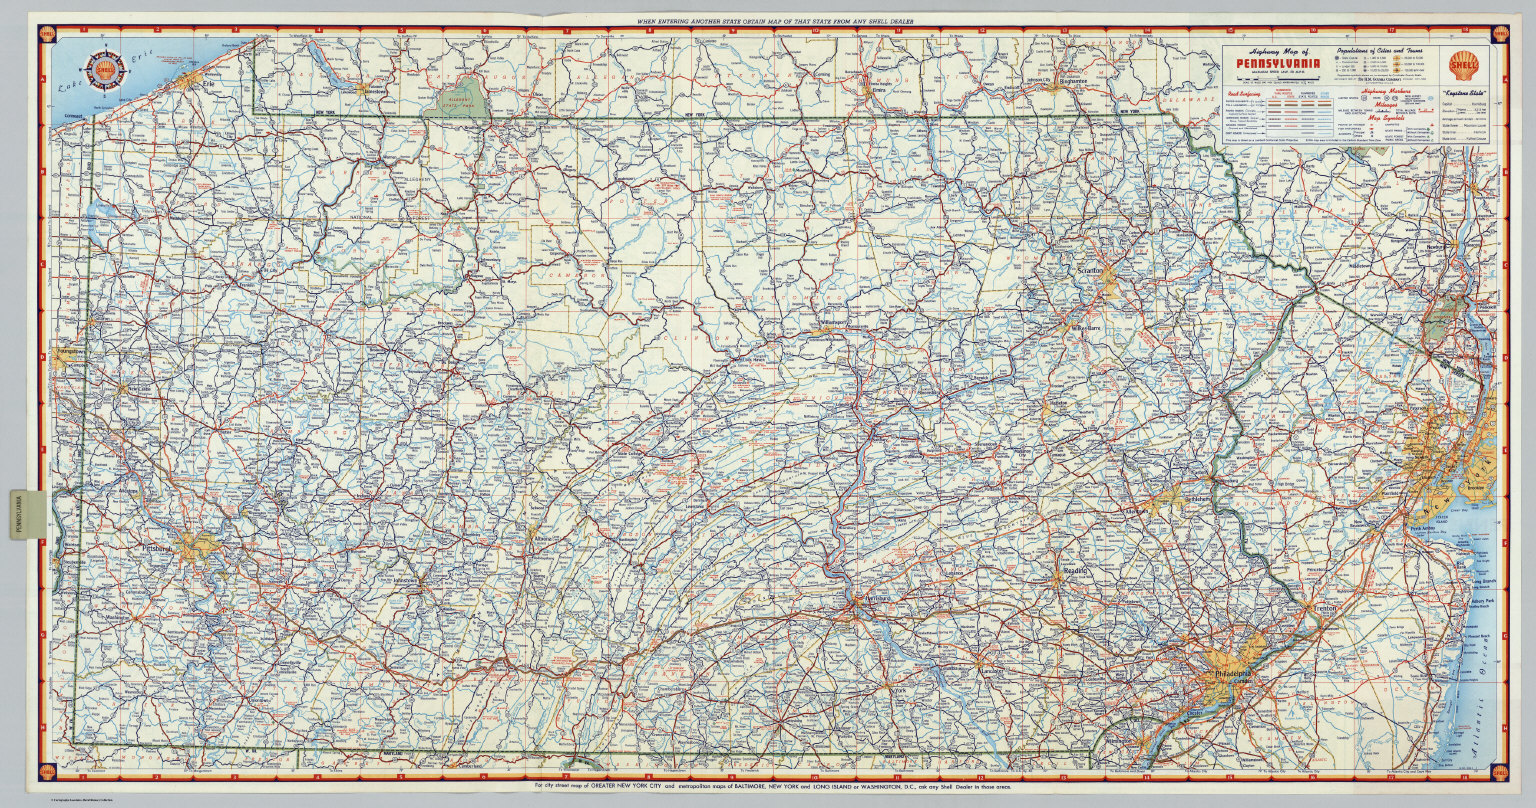 Shell Highway Map Of Pennsylvania David Rumsey Historical Map - Pennsylvania road map